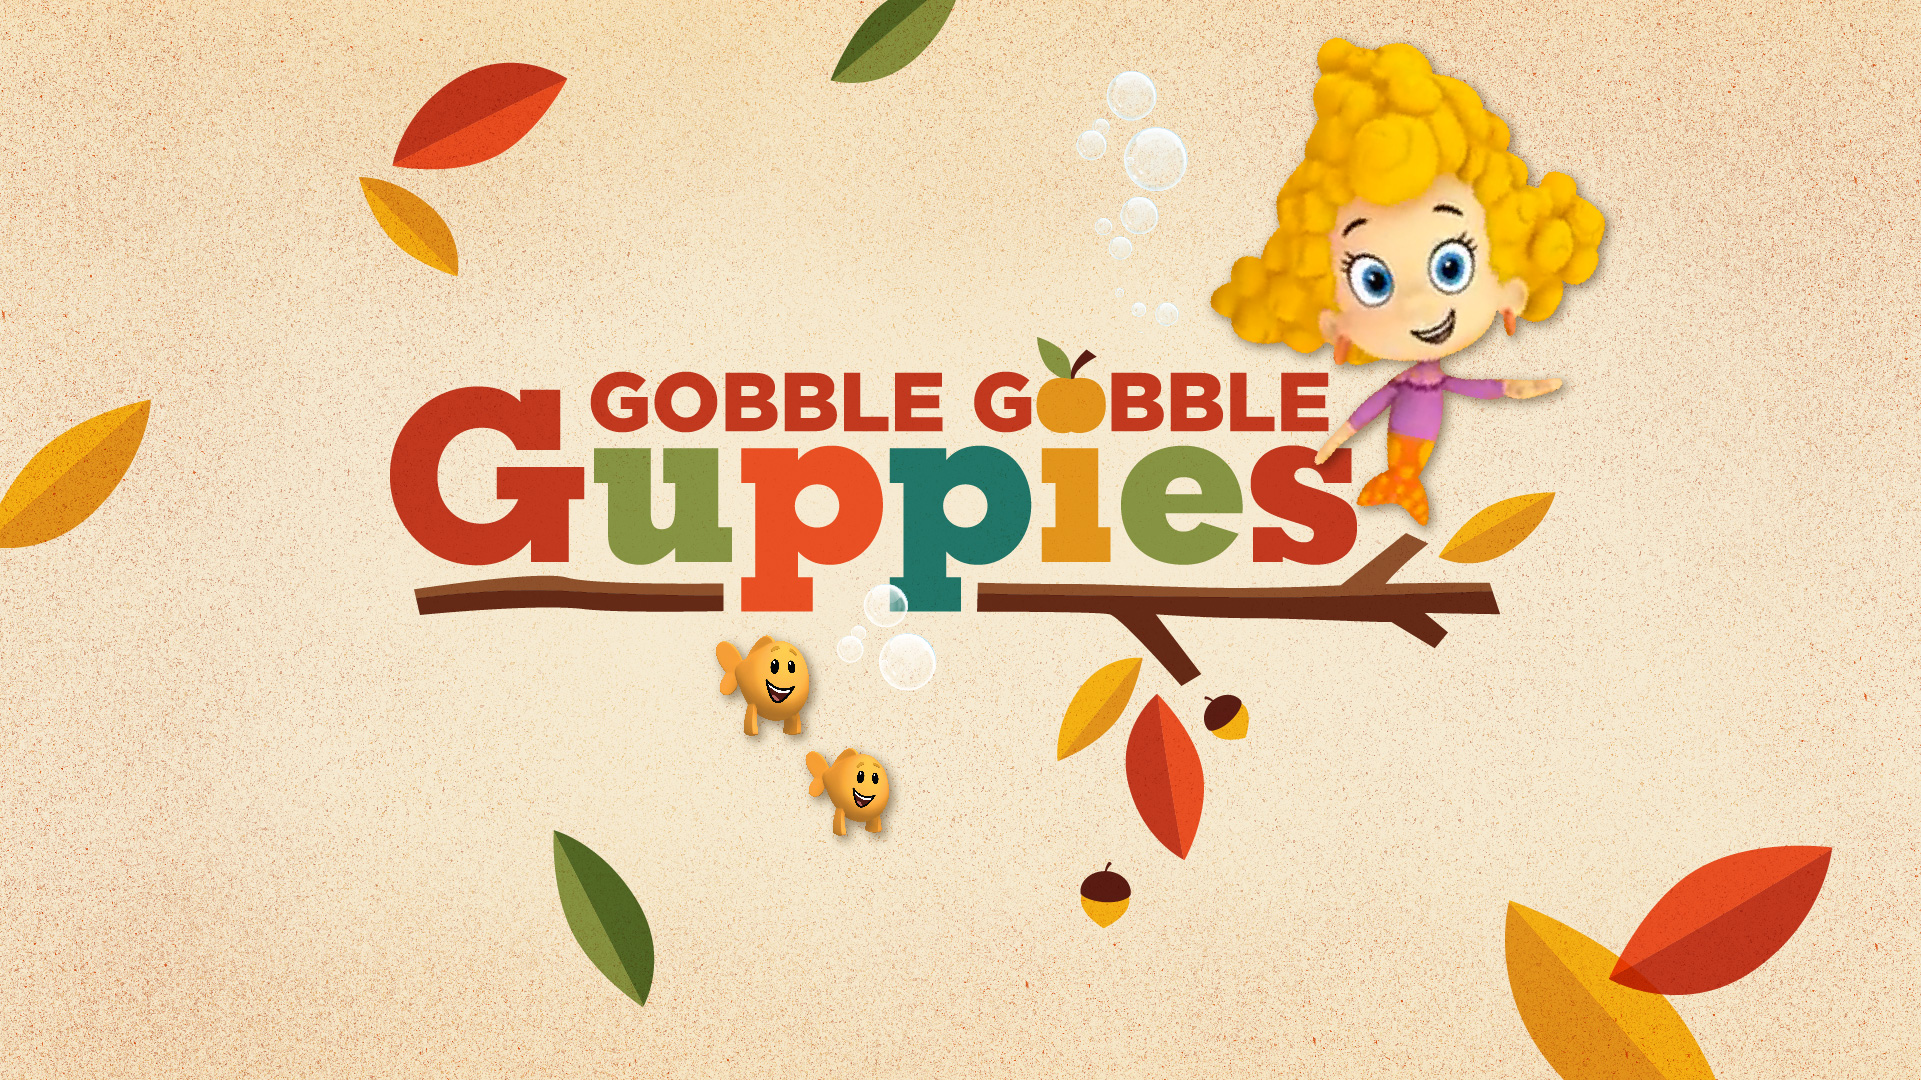 Gobble Gobble Guppies_Title-01.jpg